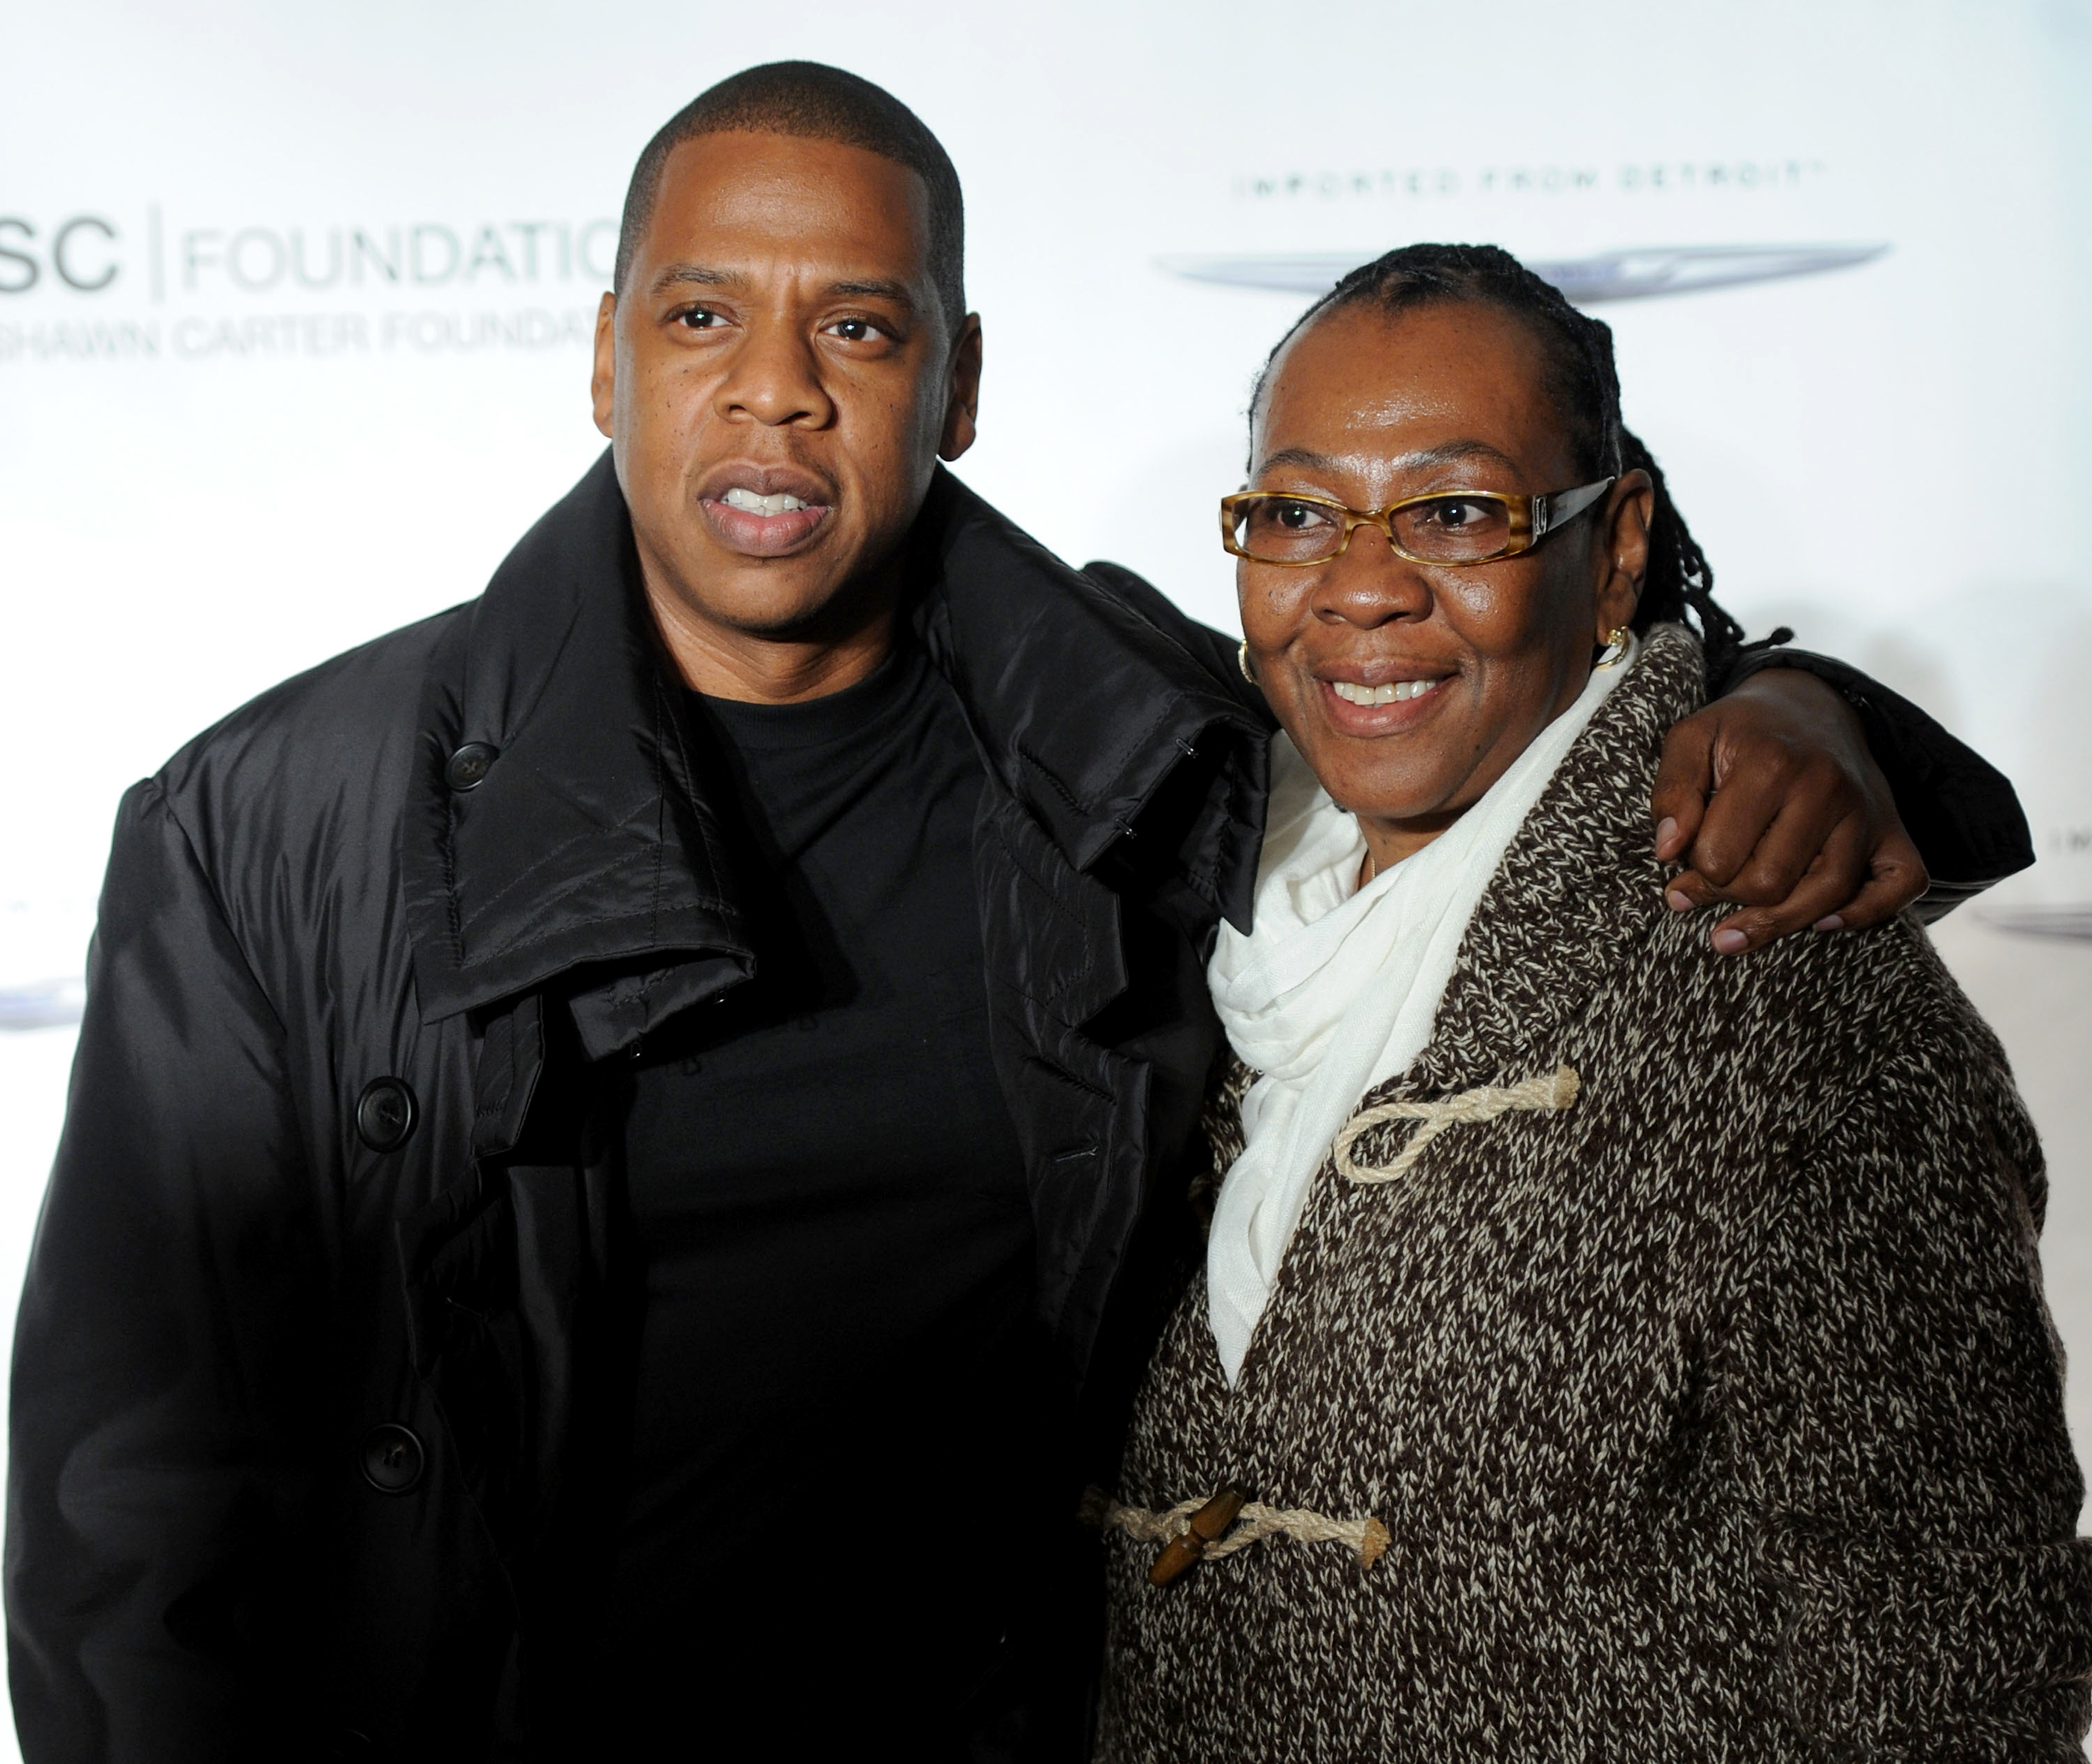 Jay zs mother comes out as lesbian in duet on new 444 album malvernweather Gallery